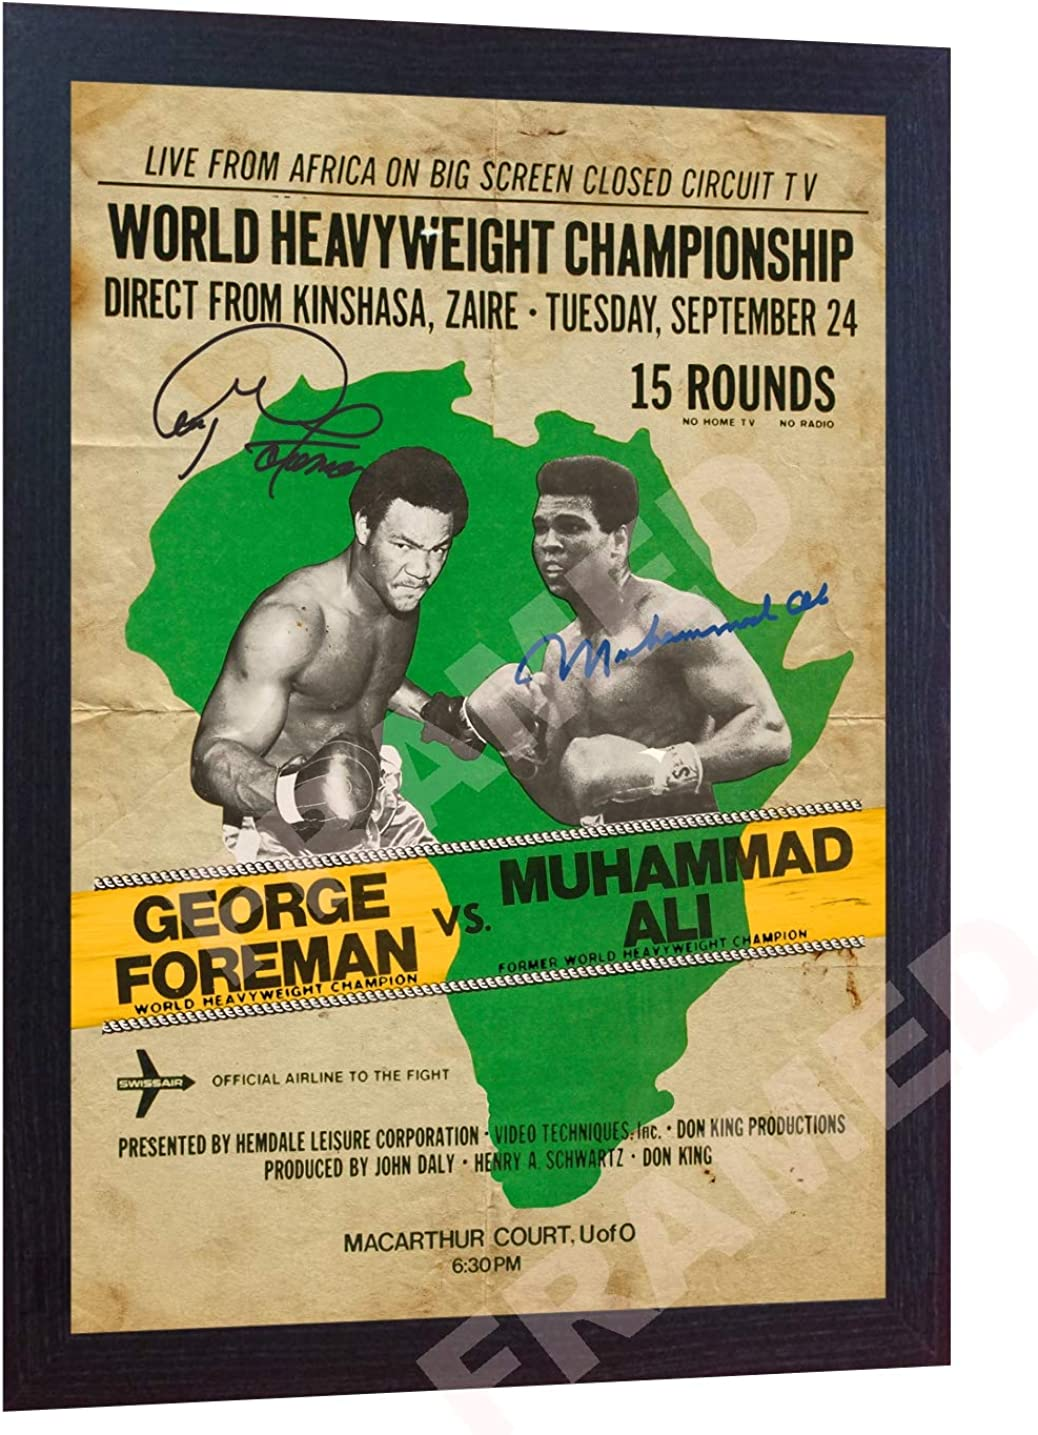 S&E DESING Muhammad ALI George Foreman Old Photo Signed Autographed Poster Vintage Framed Size Including Frame- (13 in x 10 in)